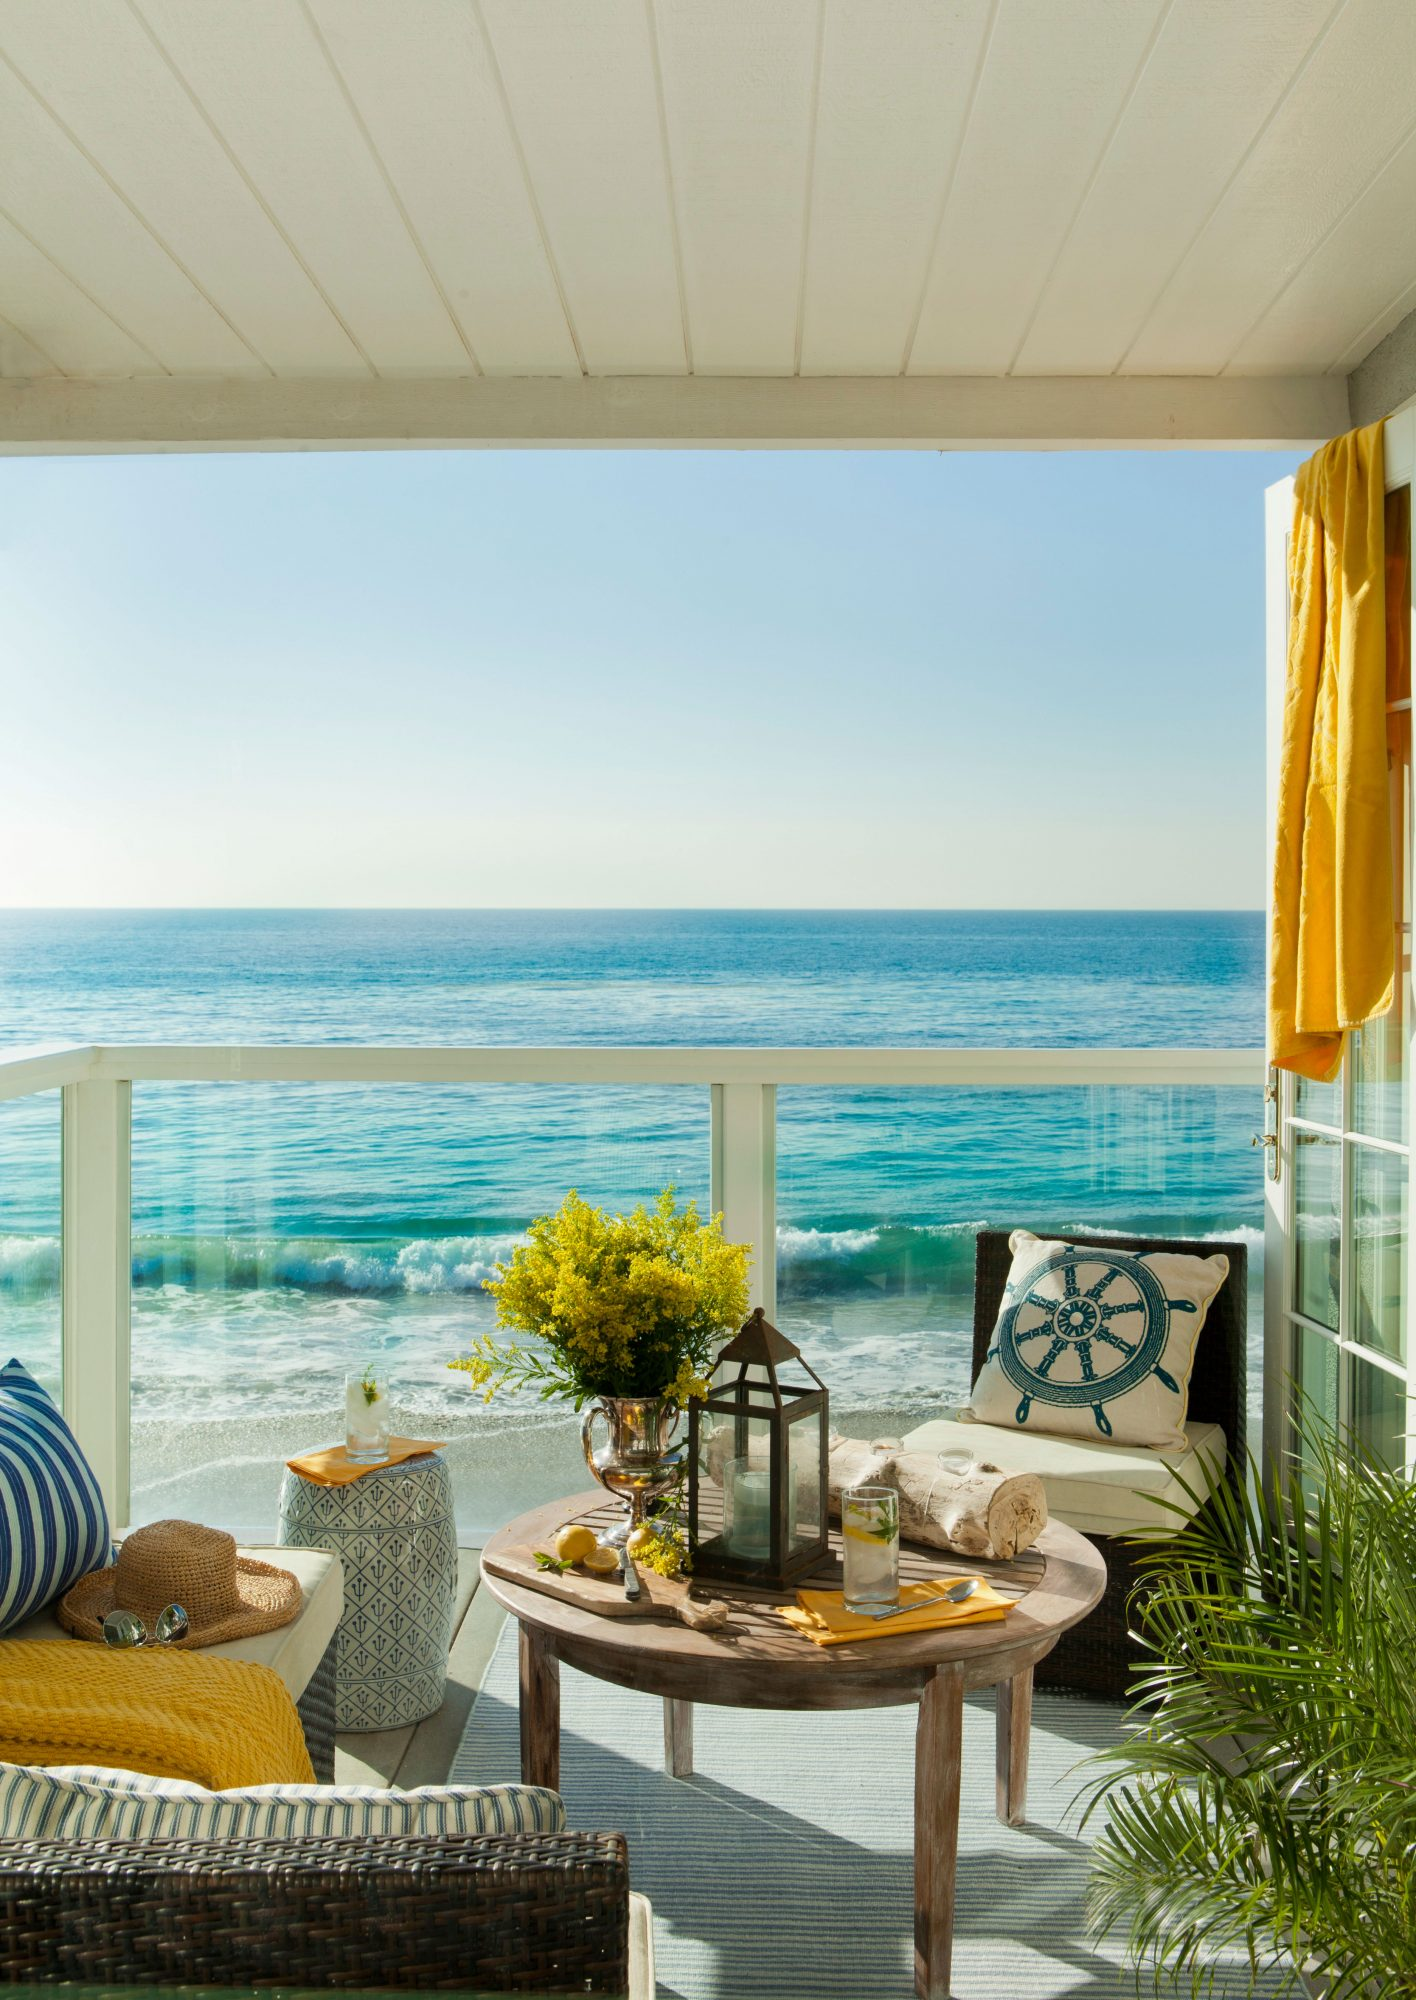 With a view this stunning, glass panels are the perfect surround for this Malibu porch.